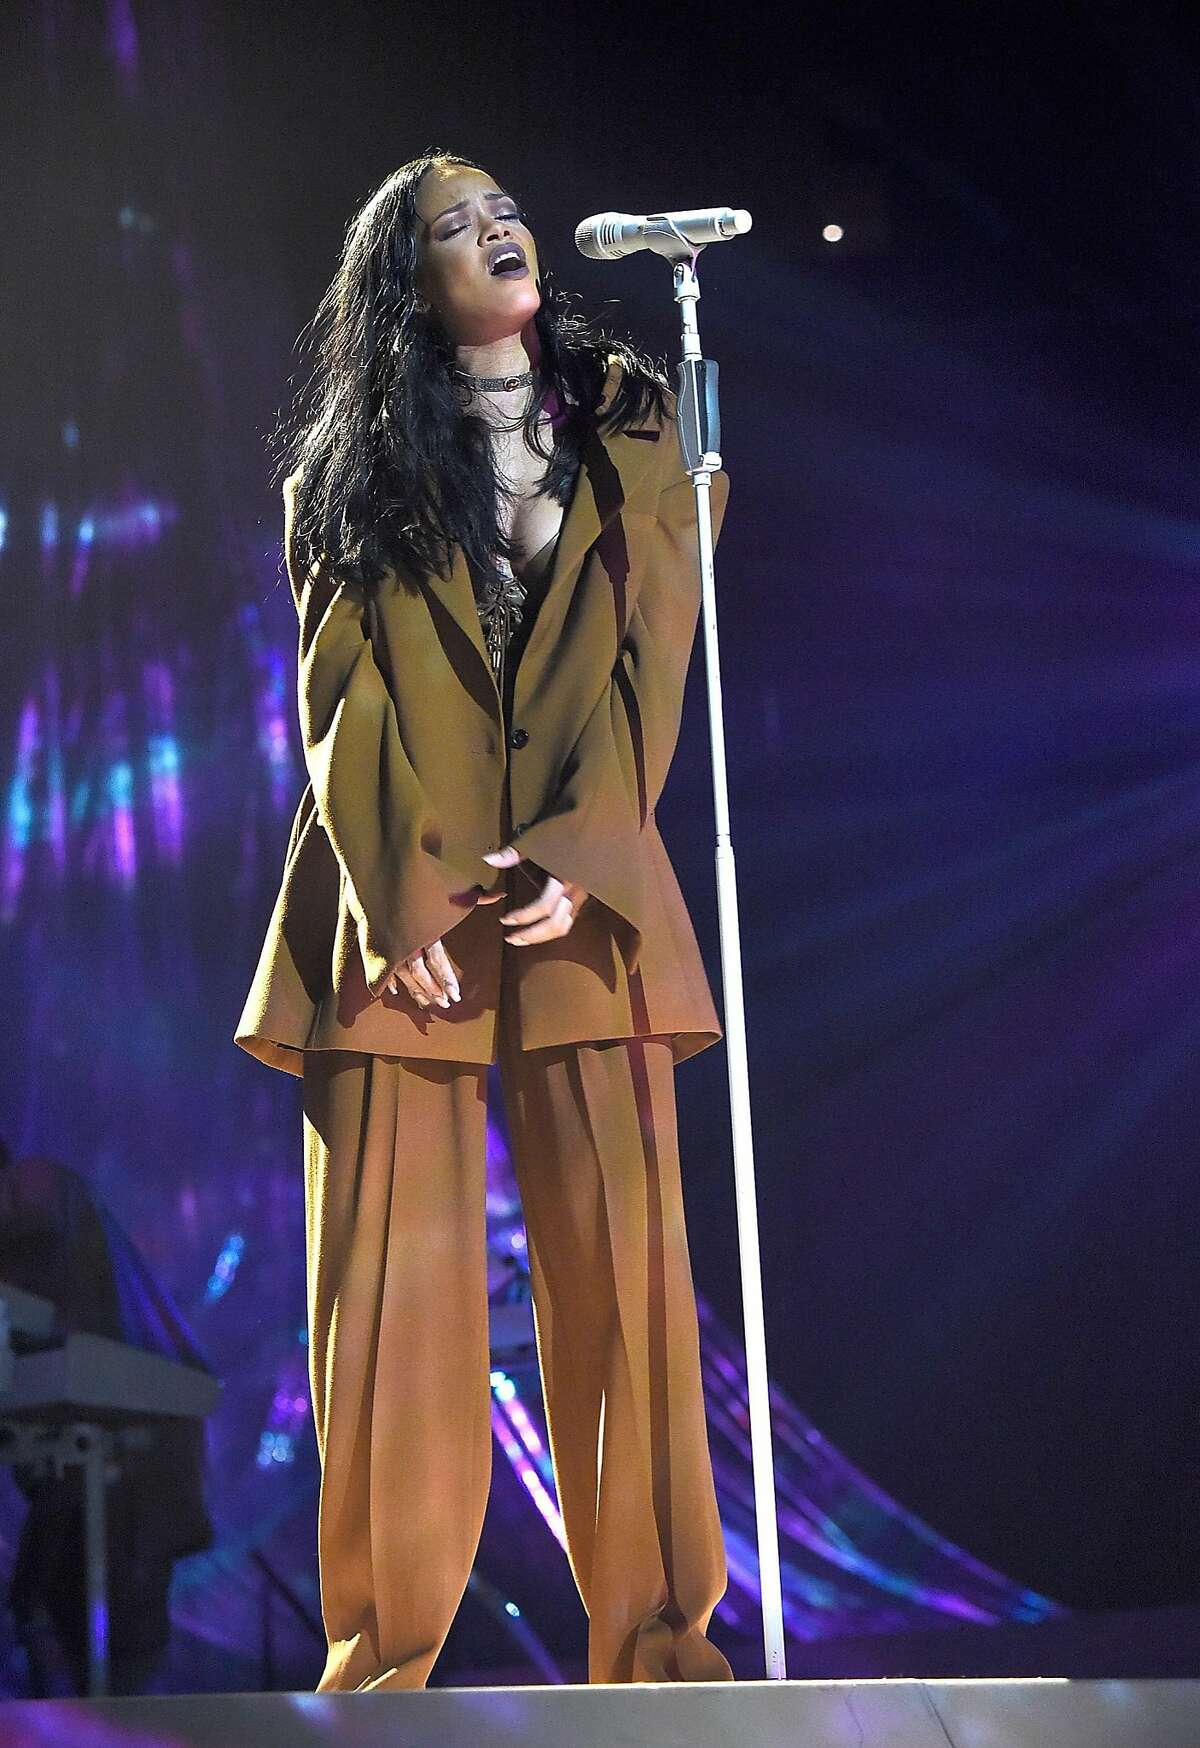 Rihanna performs as part of her Anti tour at Barclays Center on March 27, 2016.